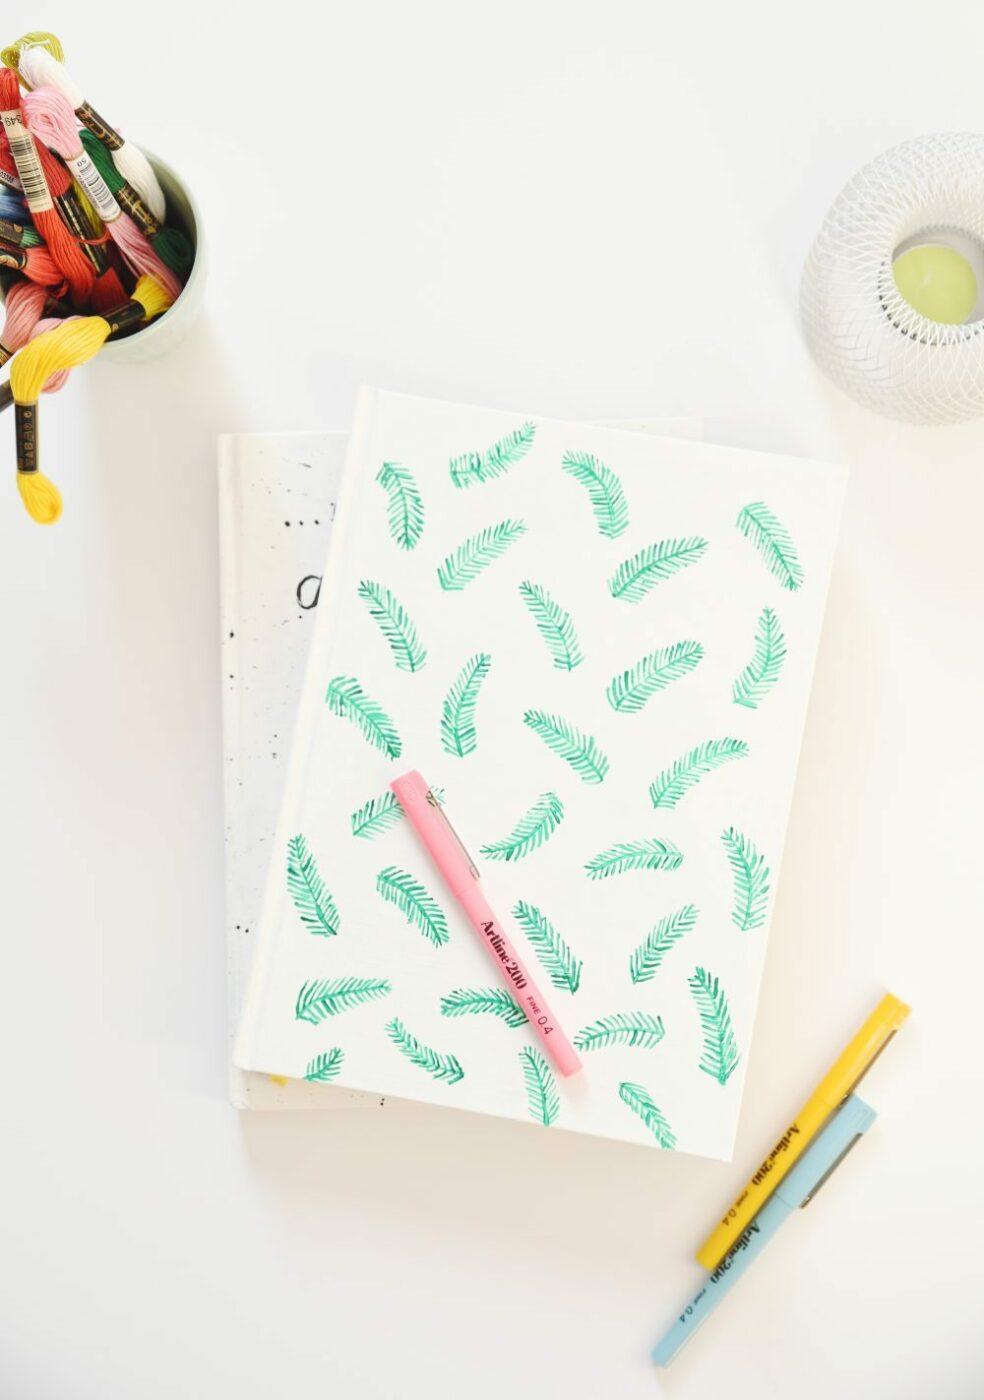 Customized DIY Notebook Covers